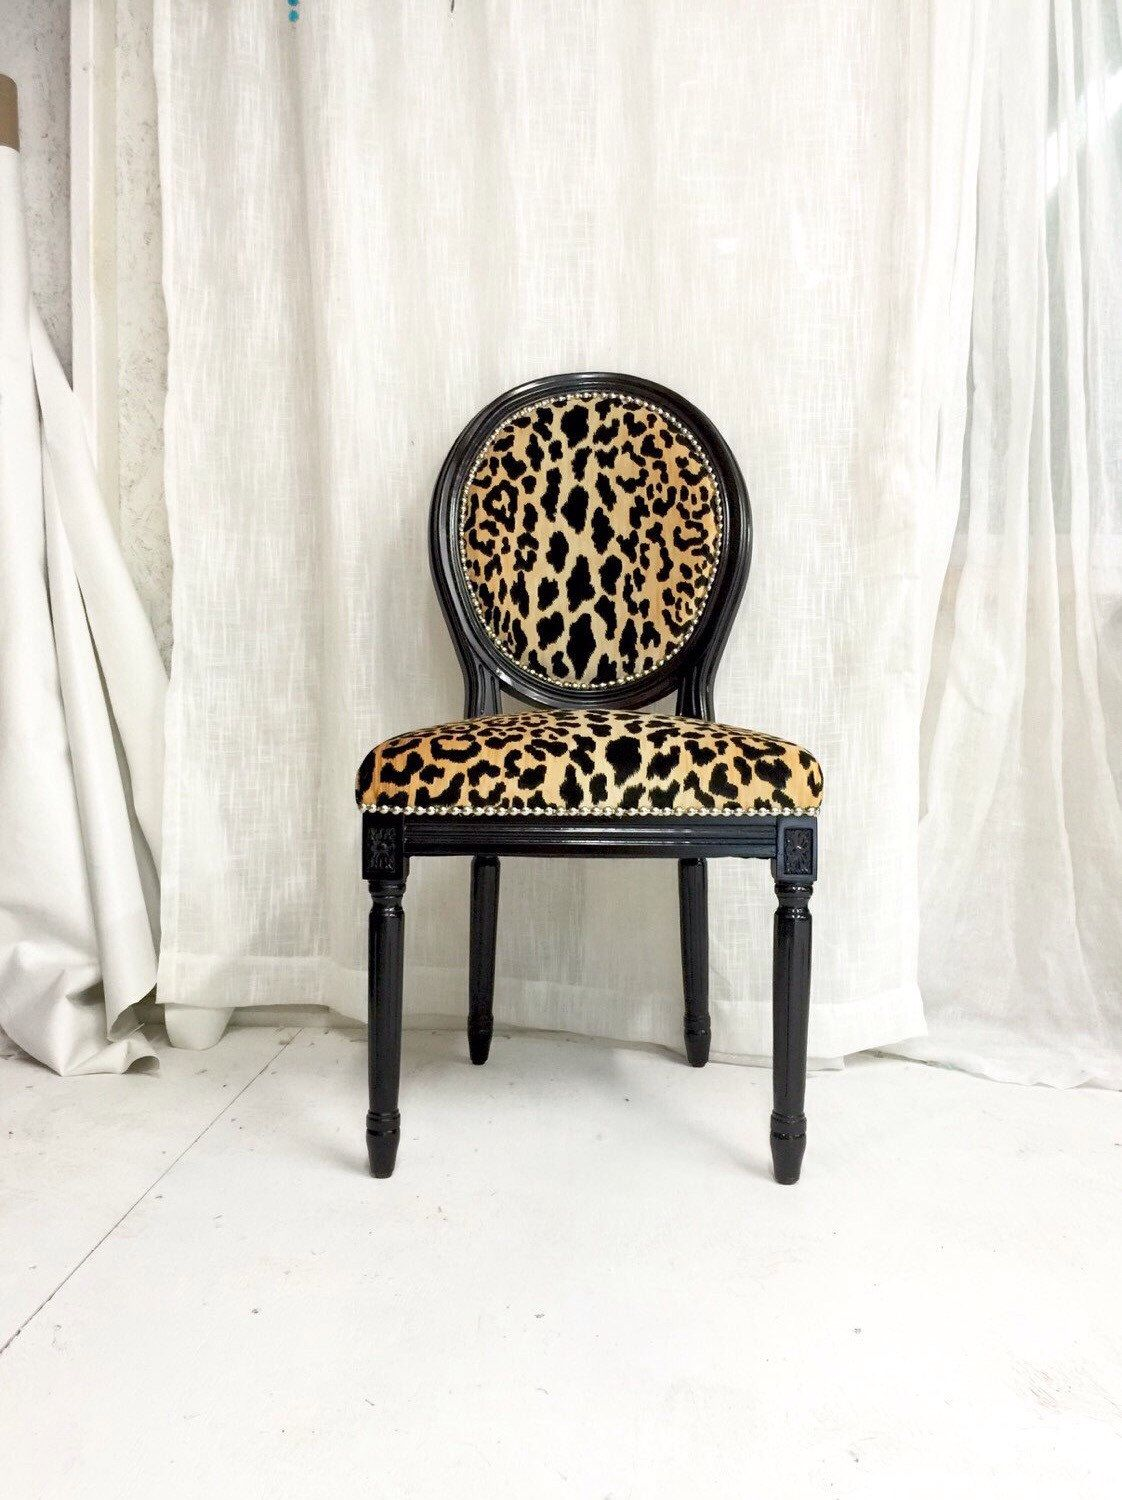 Black High Gloss Animal Print Upholstered French Louis Xvi Side Dining Chair By Throneupholstery On Etsy